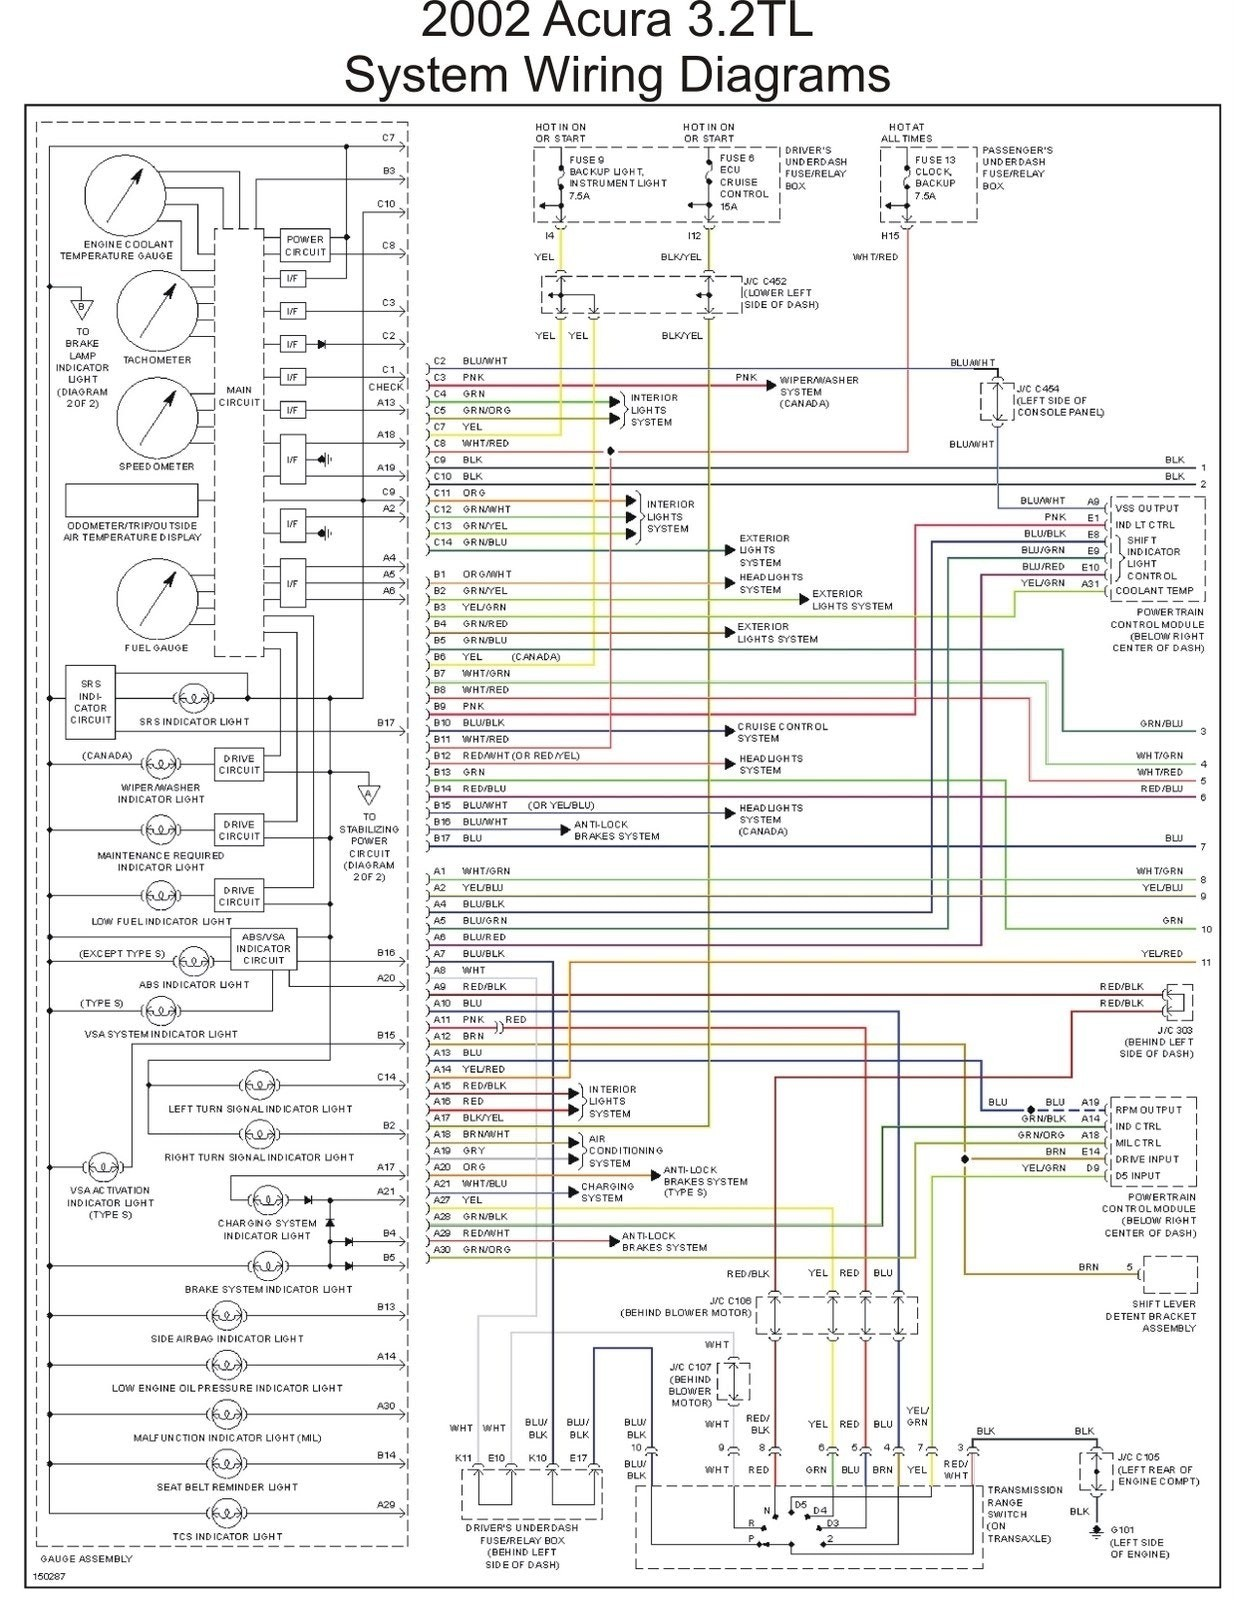 Gmc Yukon Engine Diagram Good Guide Of Wiring 2002 Envoy Fuse Box Library Rh 87 Akszer Eu 2009